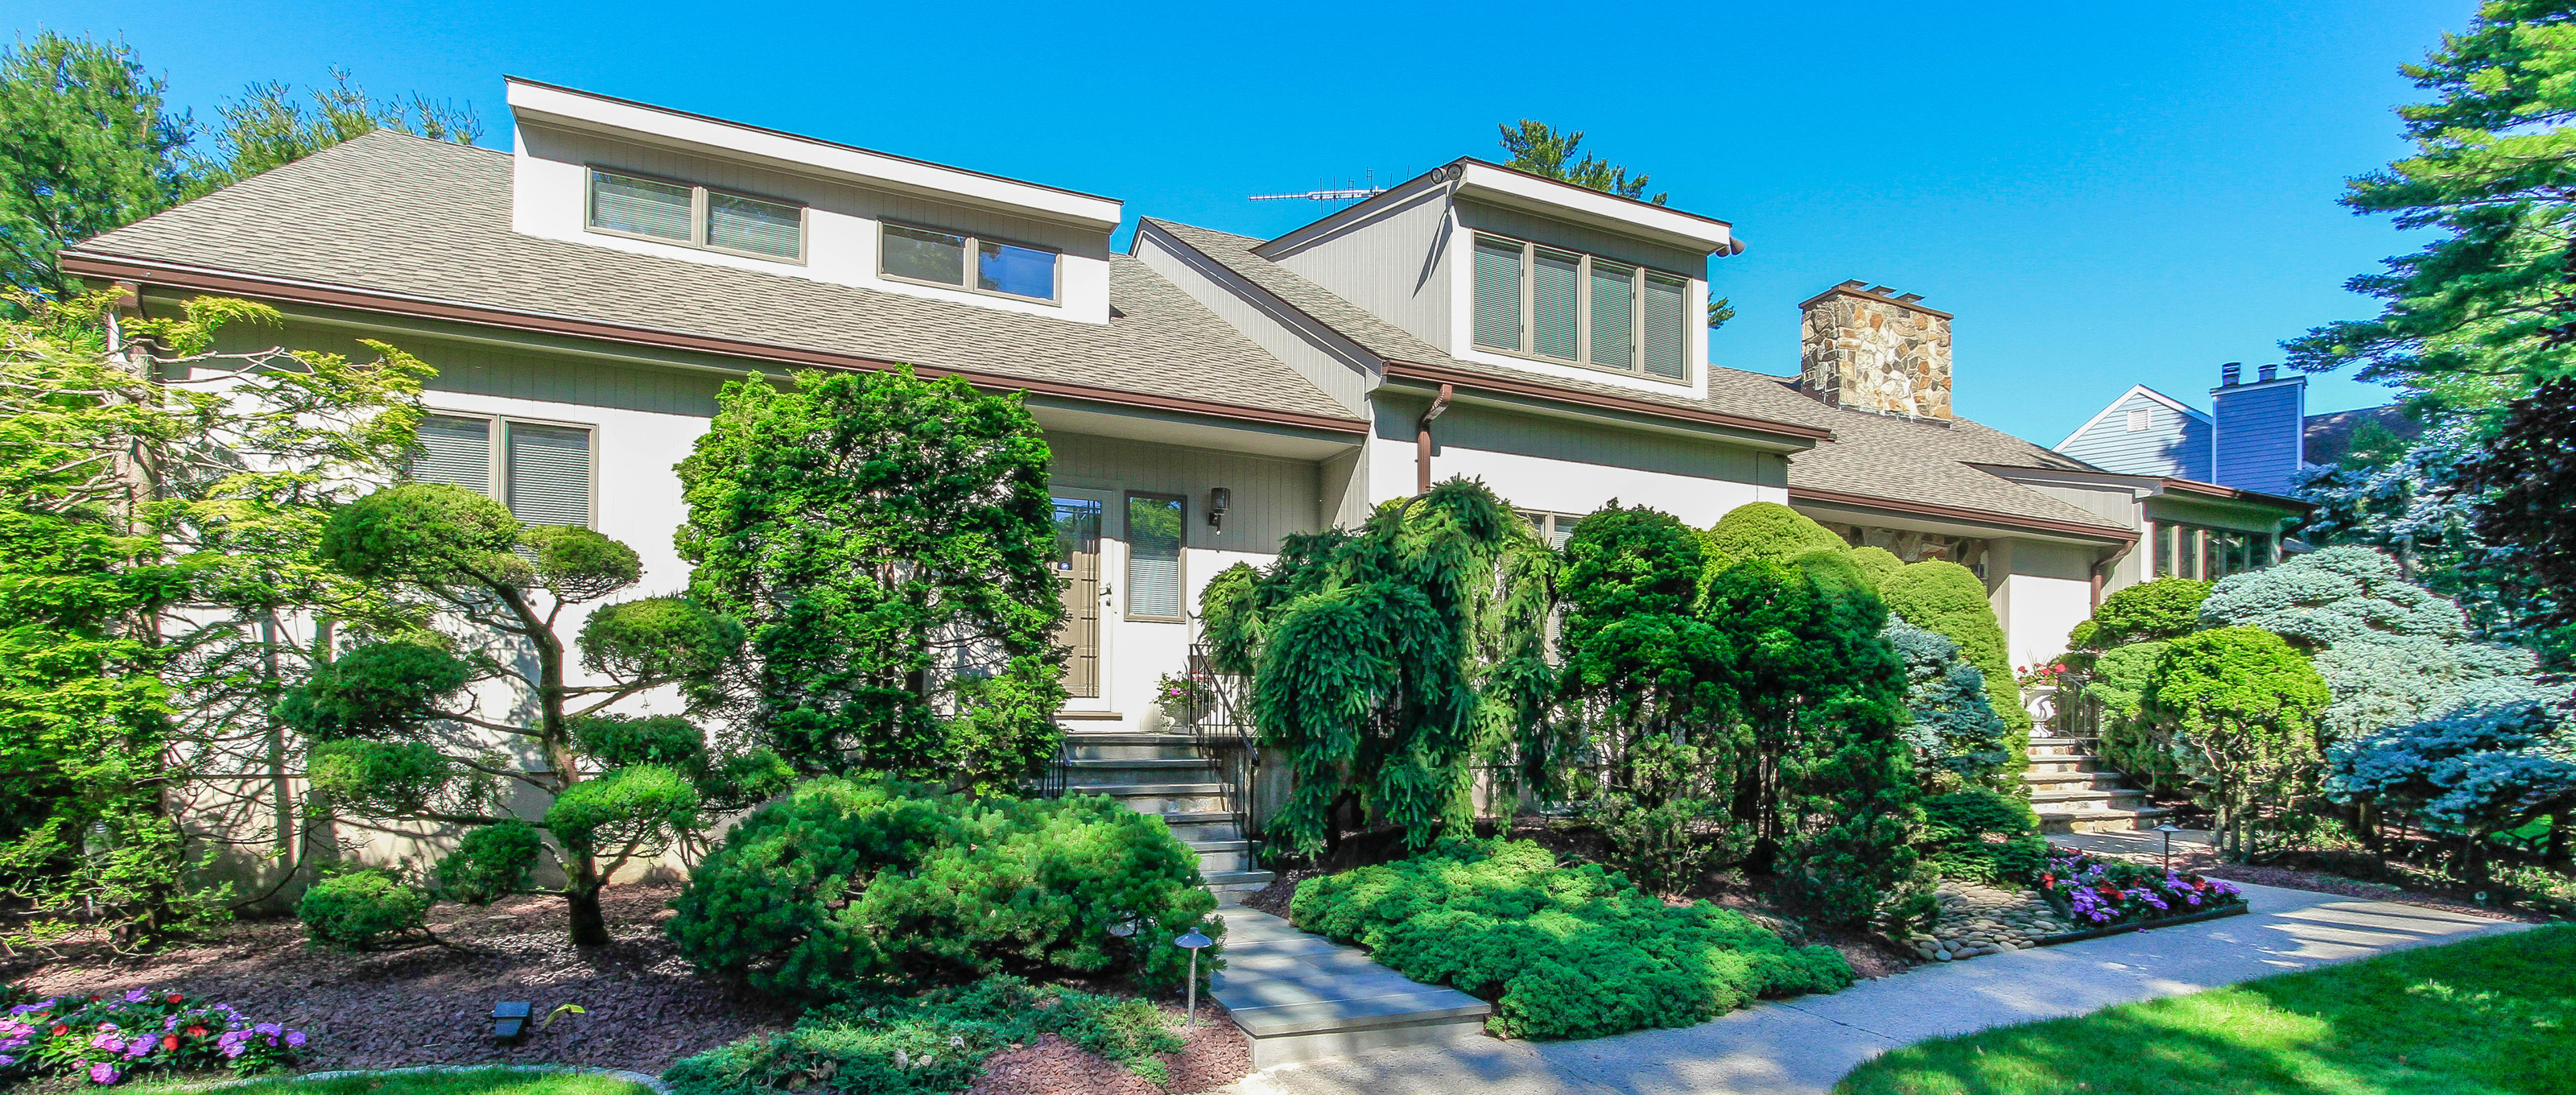 Single Family Home for Sale at Stone and cedar Contemporary Colonial 84 Rye Road Rye, New York 10580 United States